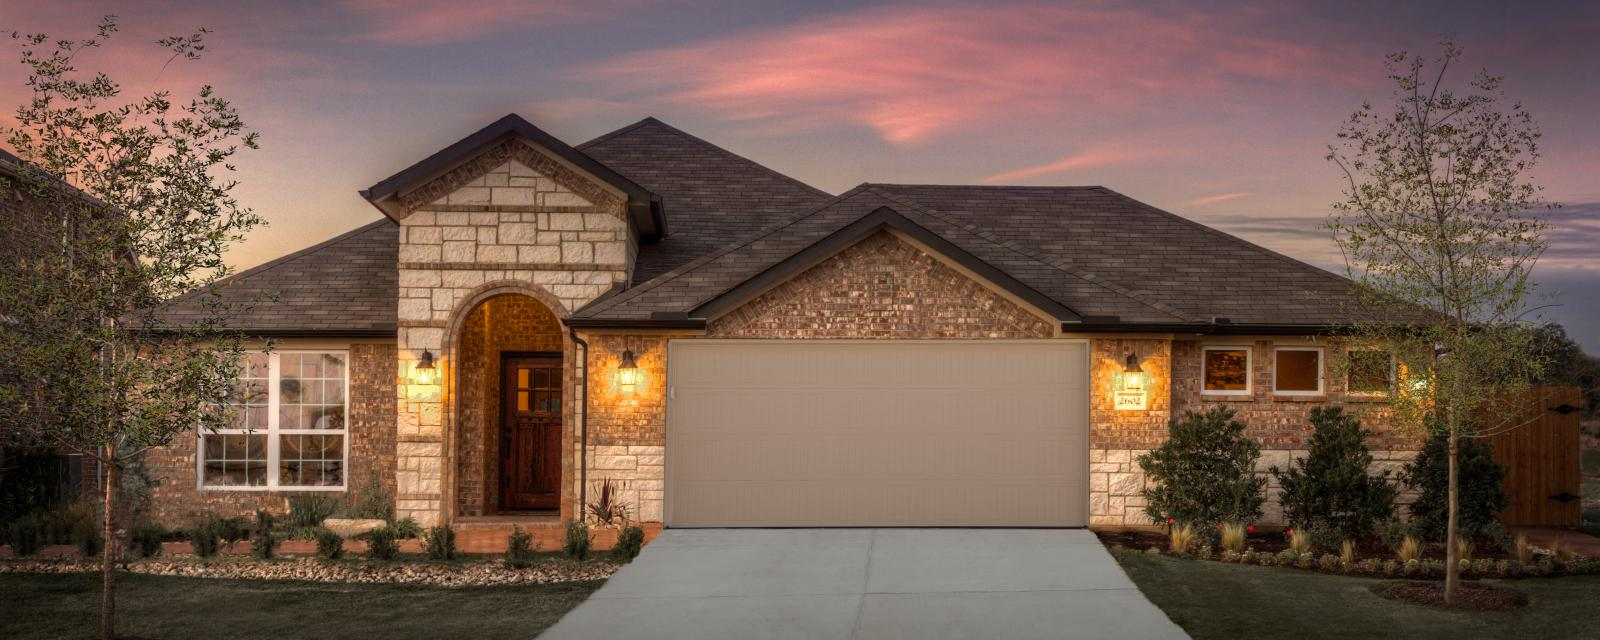 Bunny trail estates new homes killeen fort hood tx home for Home builders in killeen tx